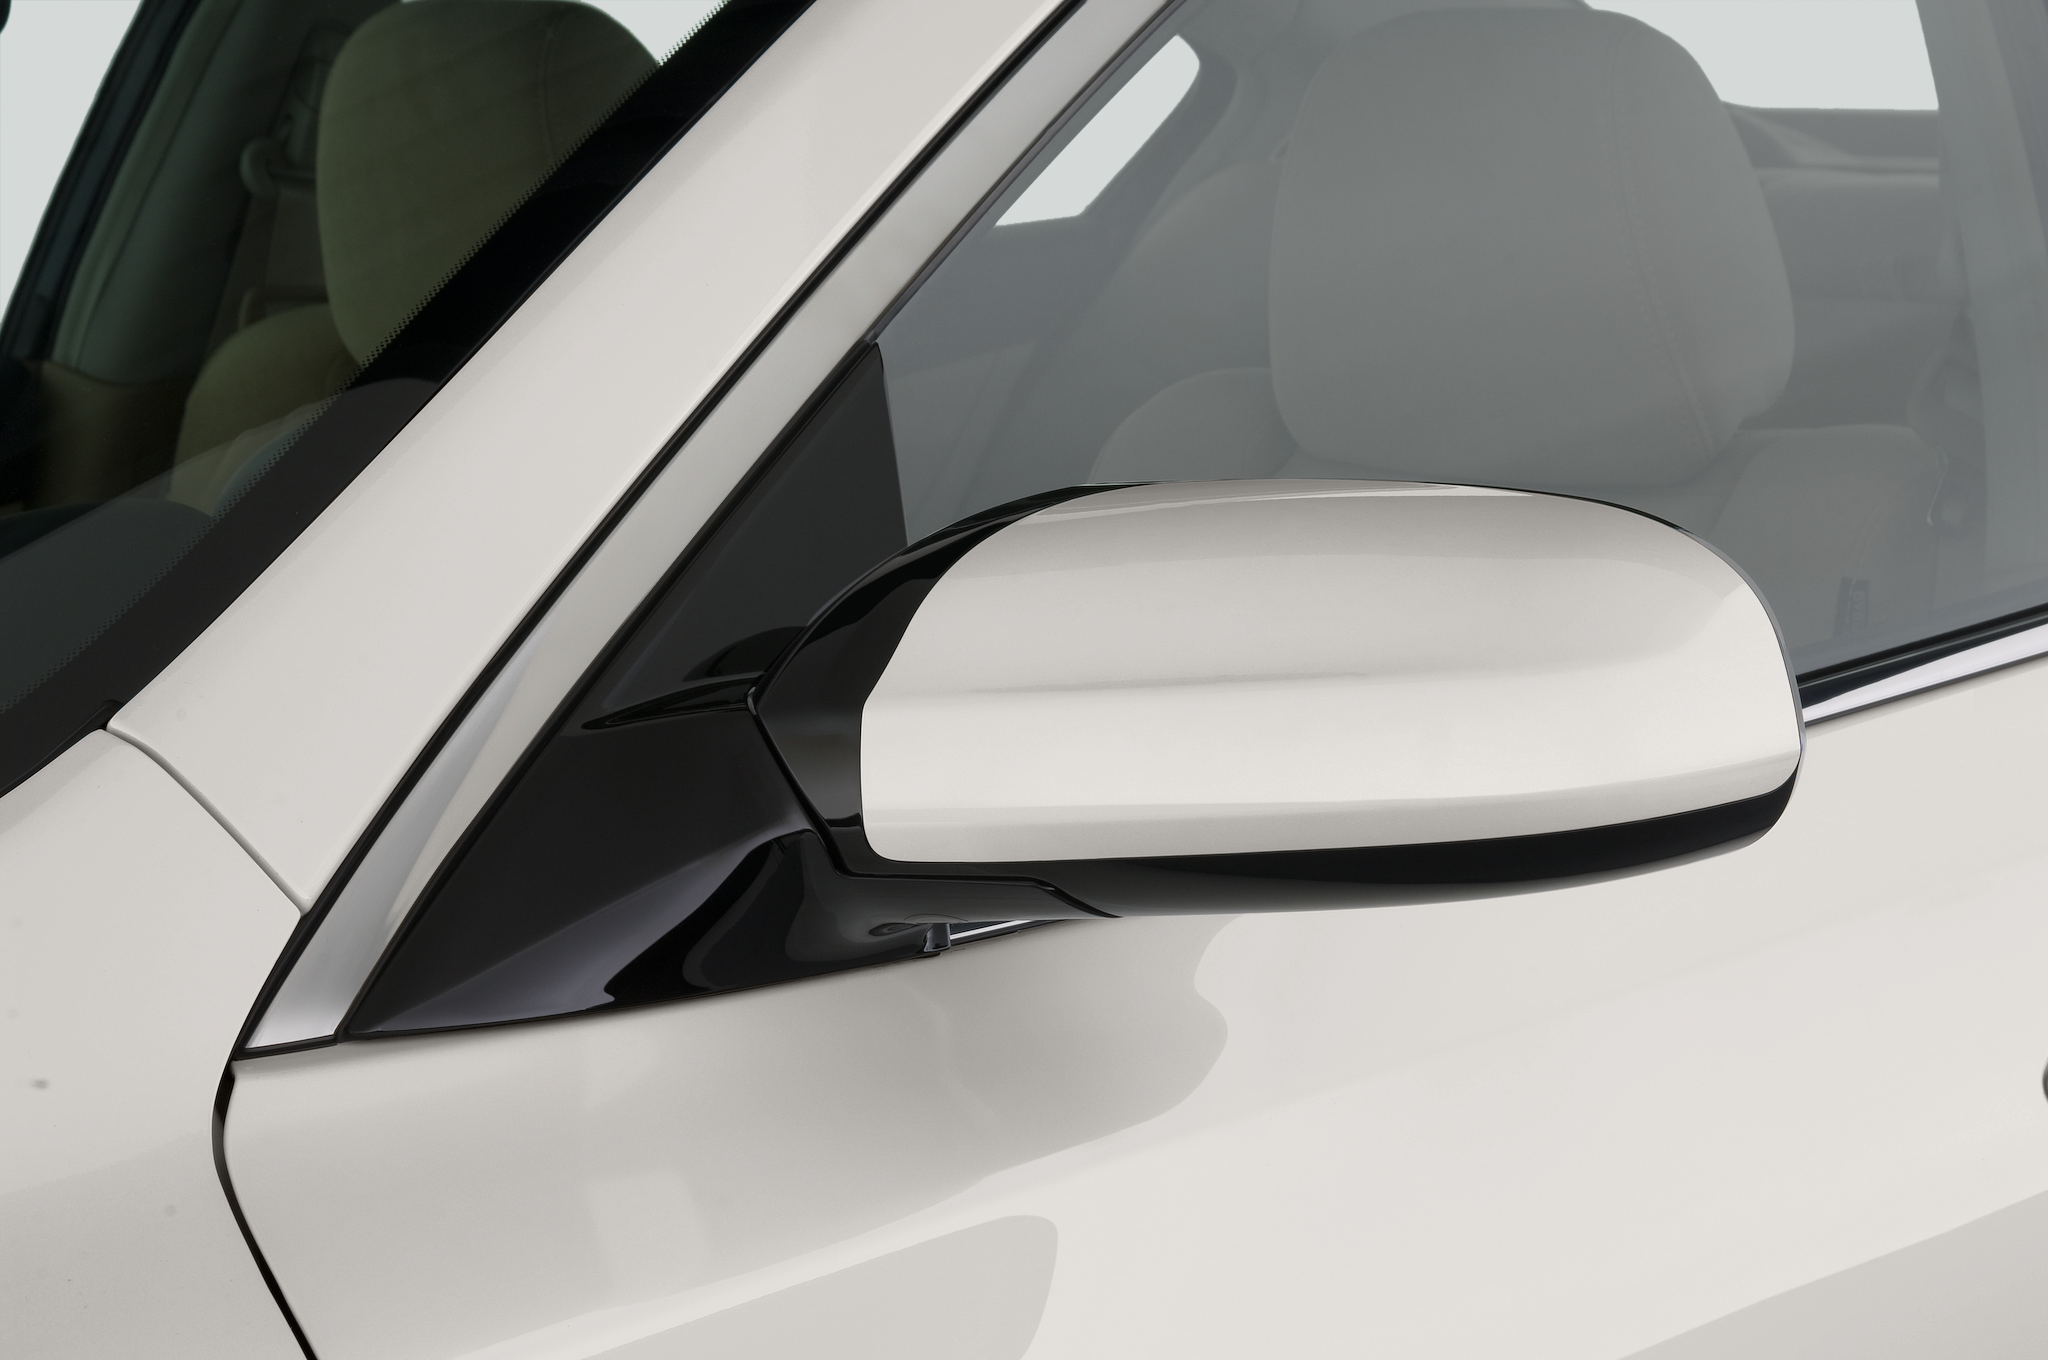 2014 Nissan Altima Mirror Replacement Www Topsimages Com